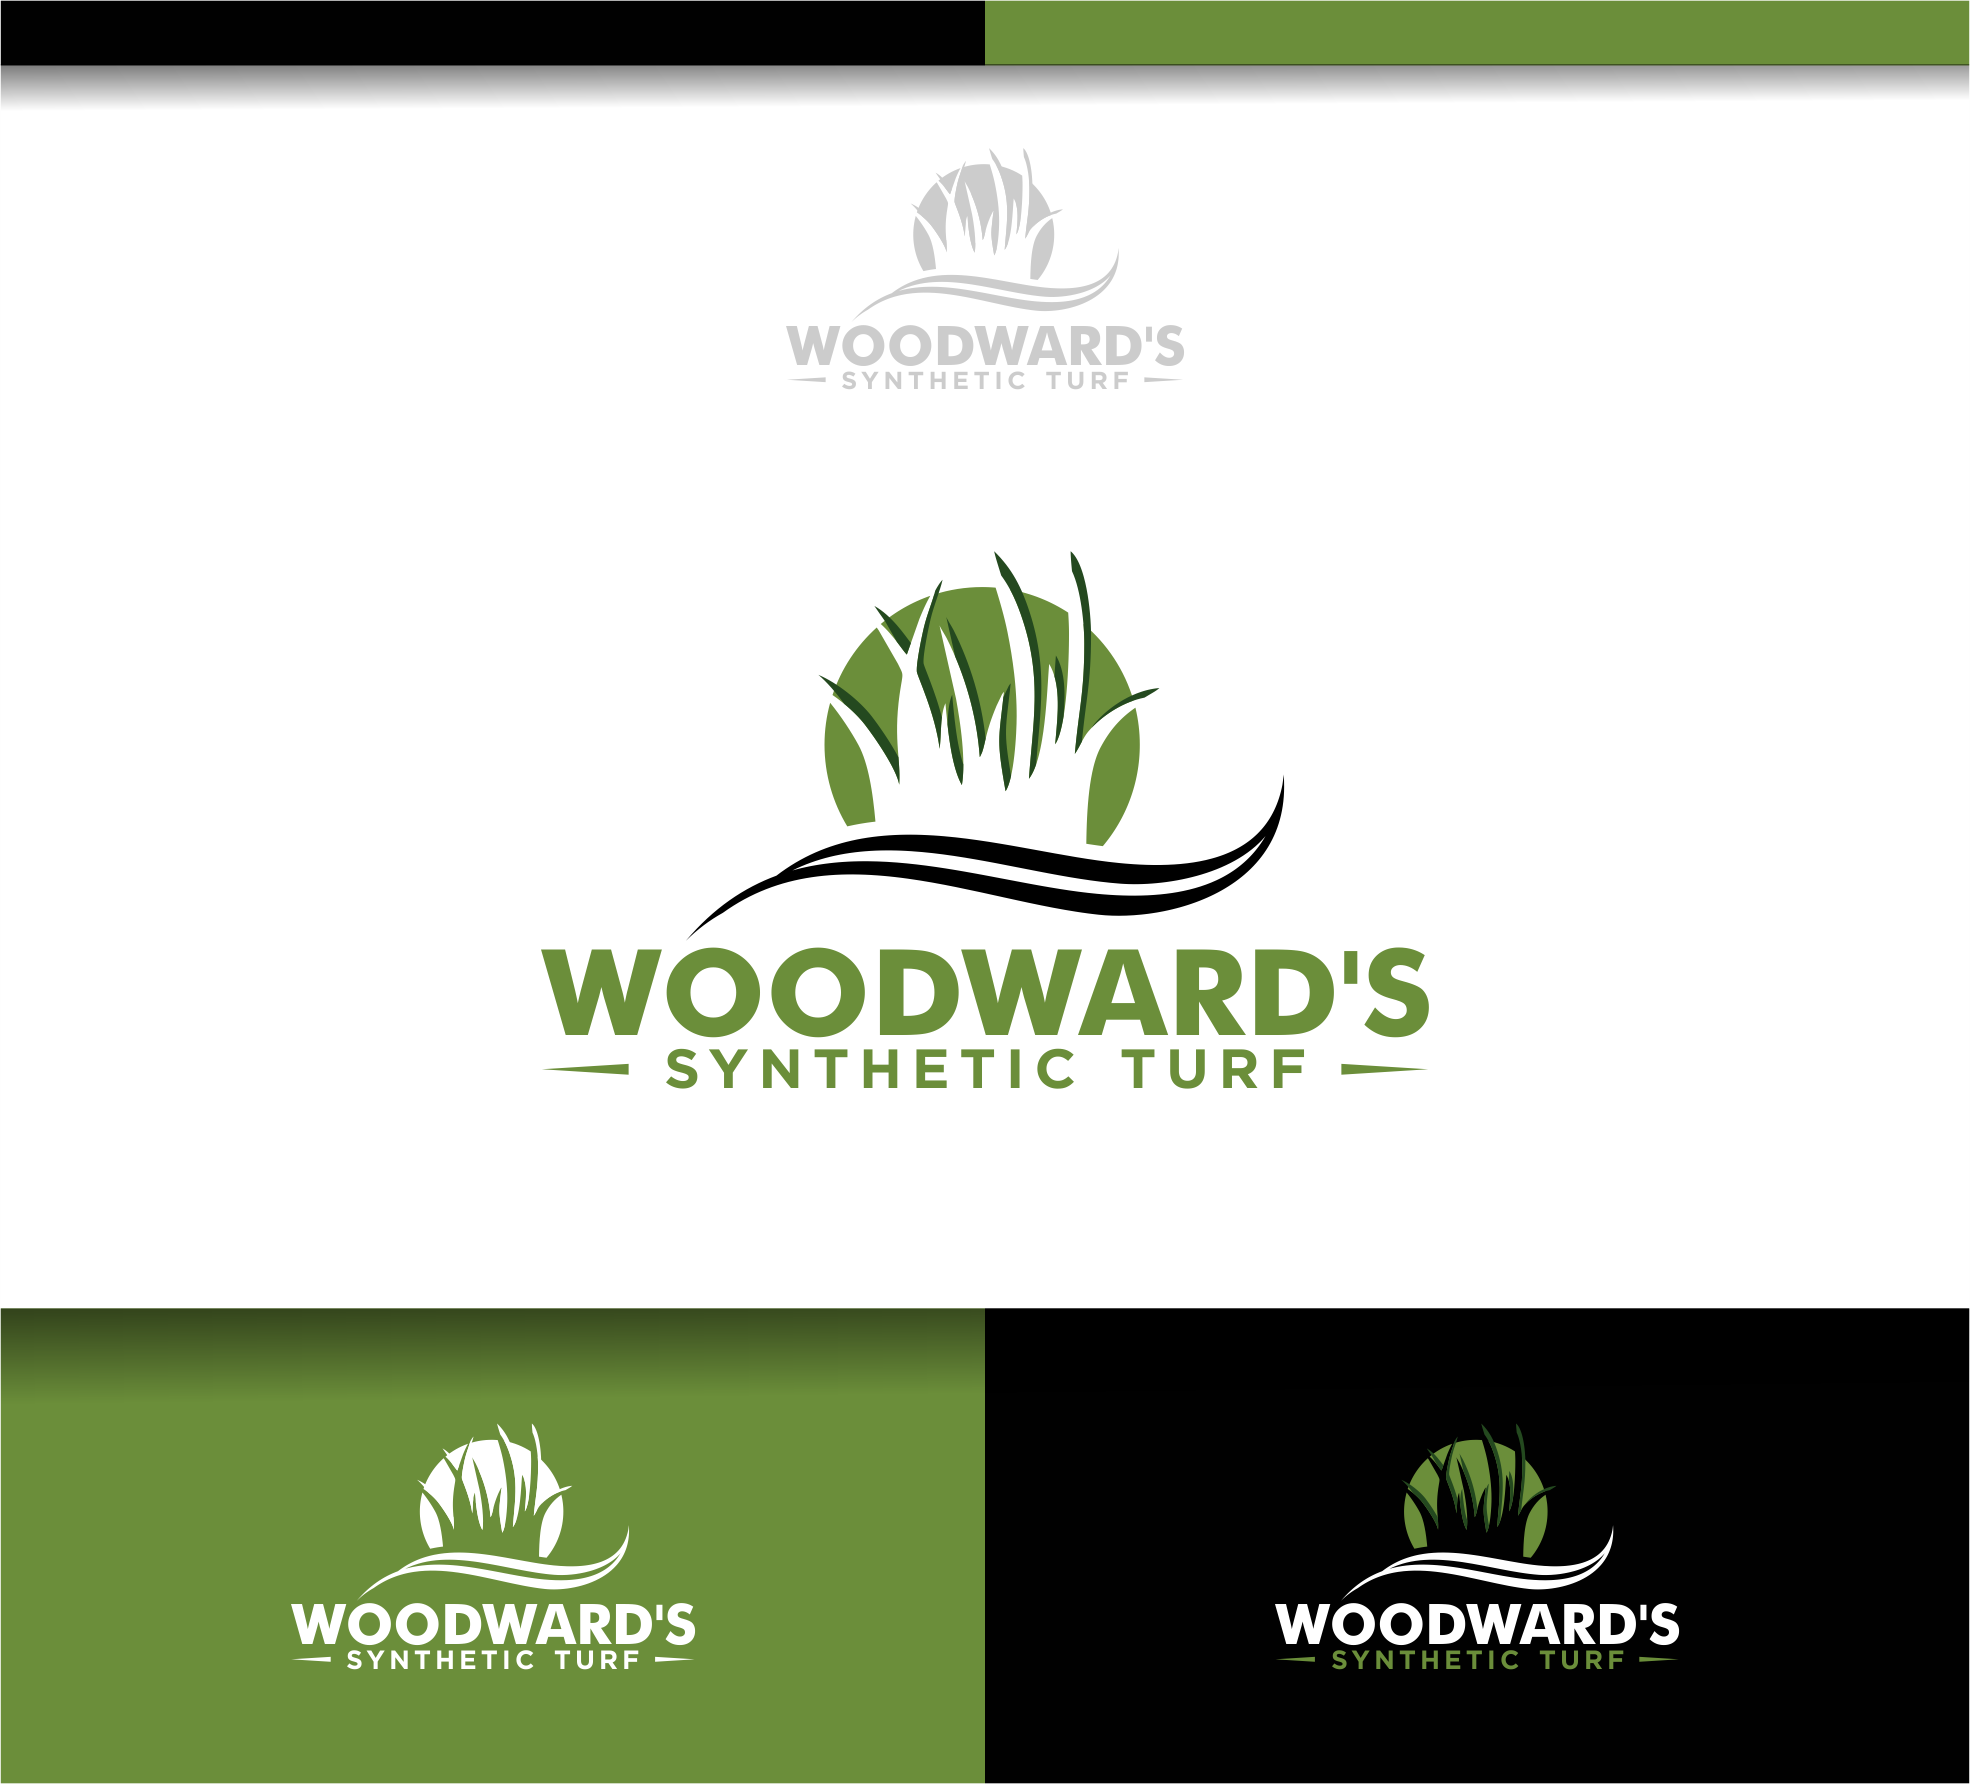 Logo Design by Raymond Garcia - Entry No. 89 in the Logo Design Contest Artistic Logo Design for Woodward's Synthetic Turf.